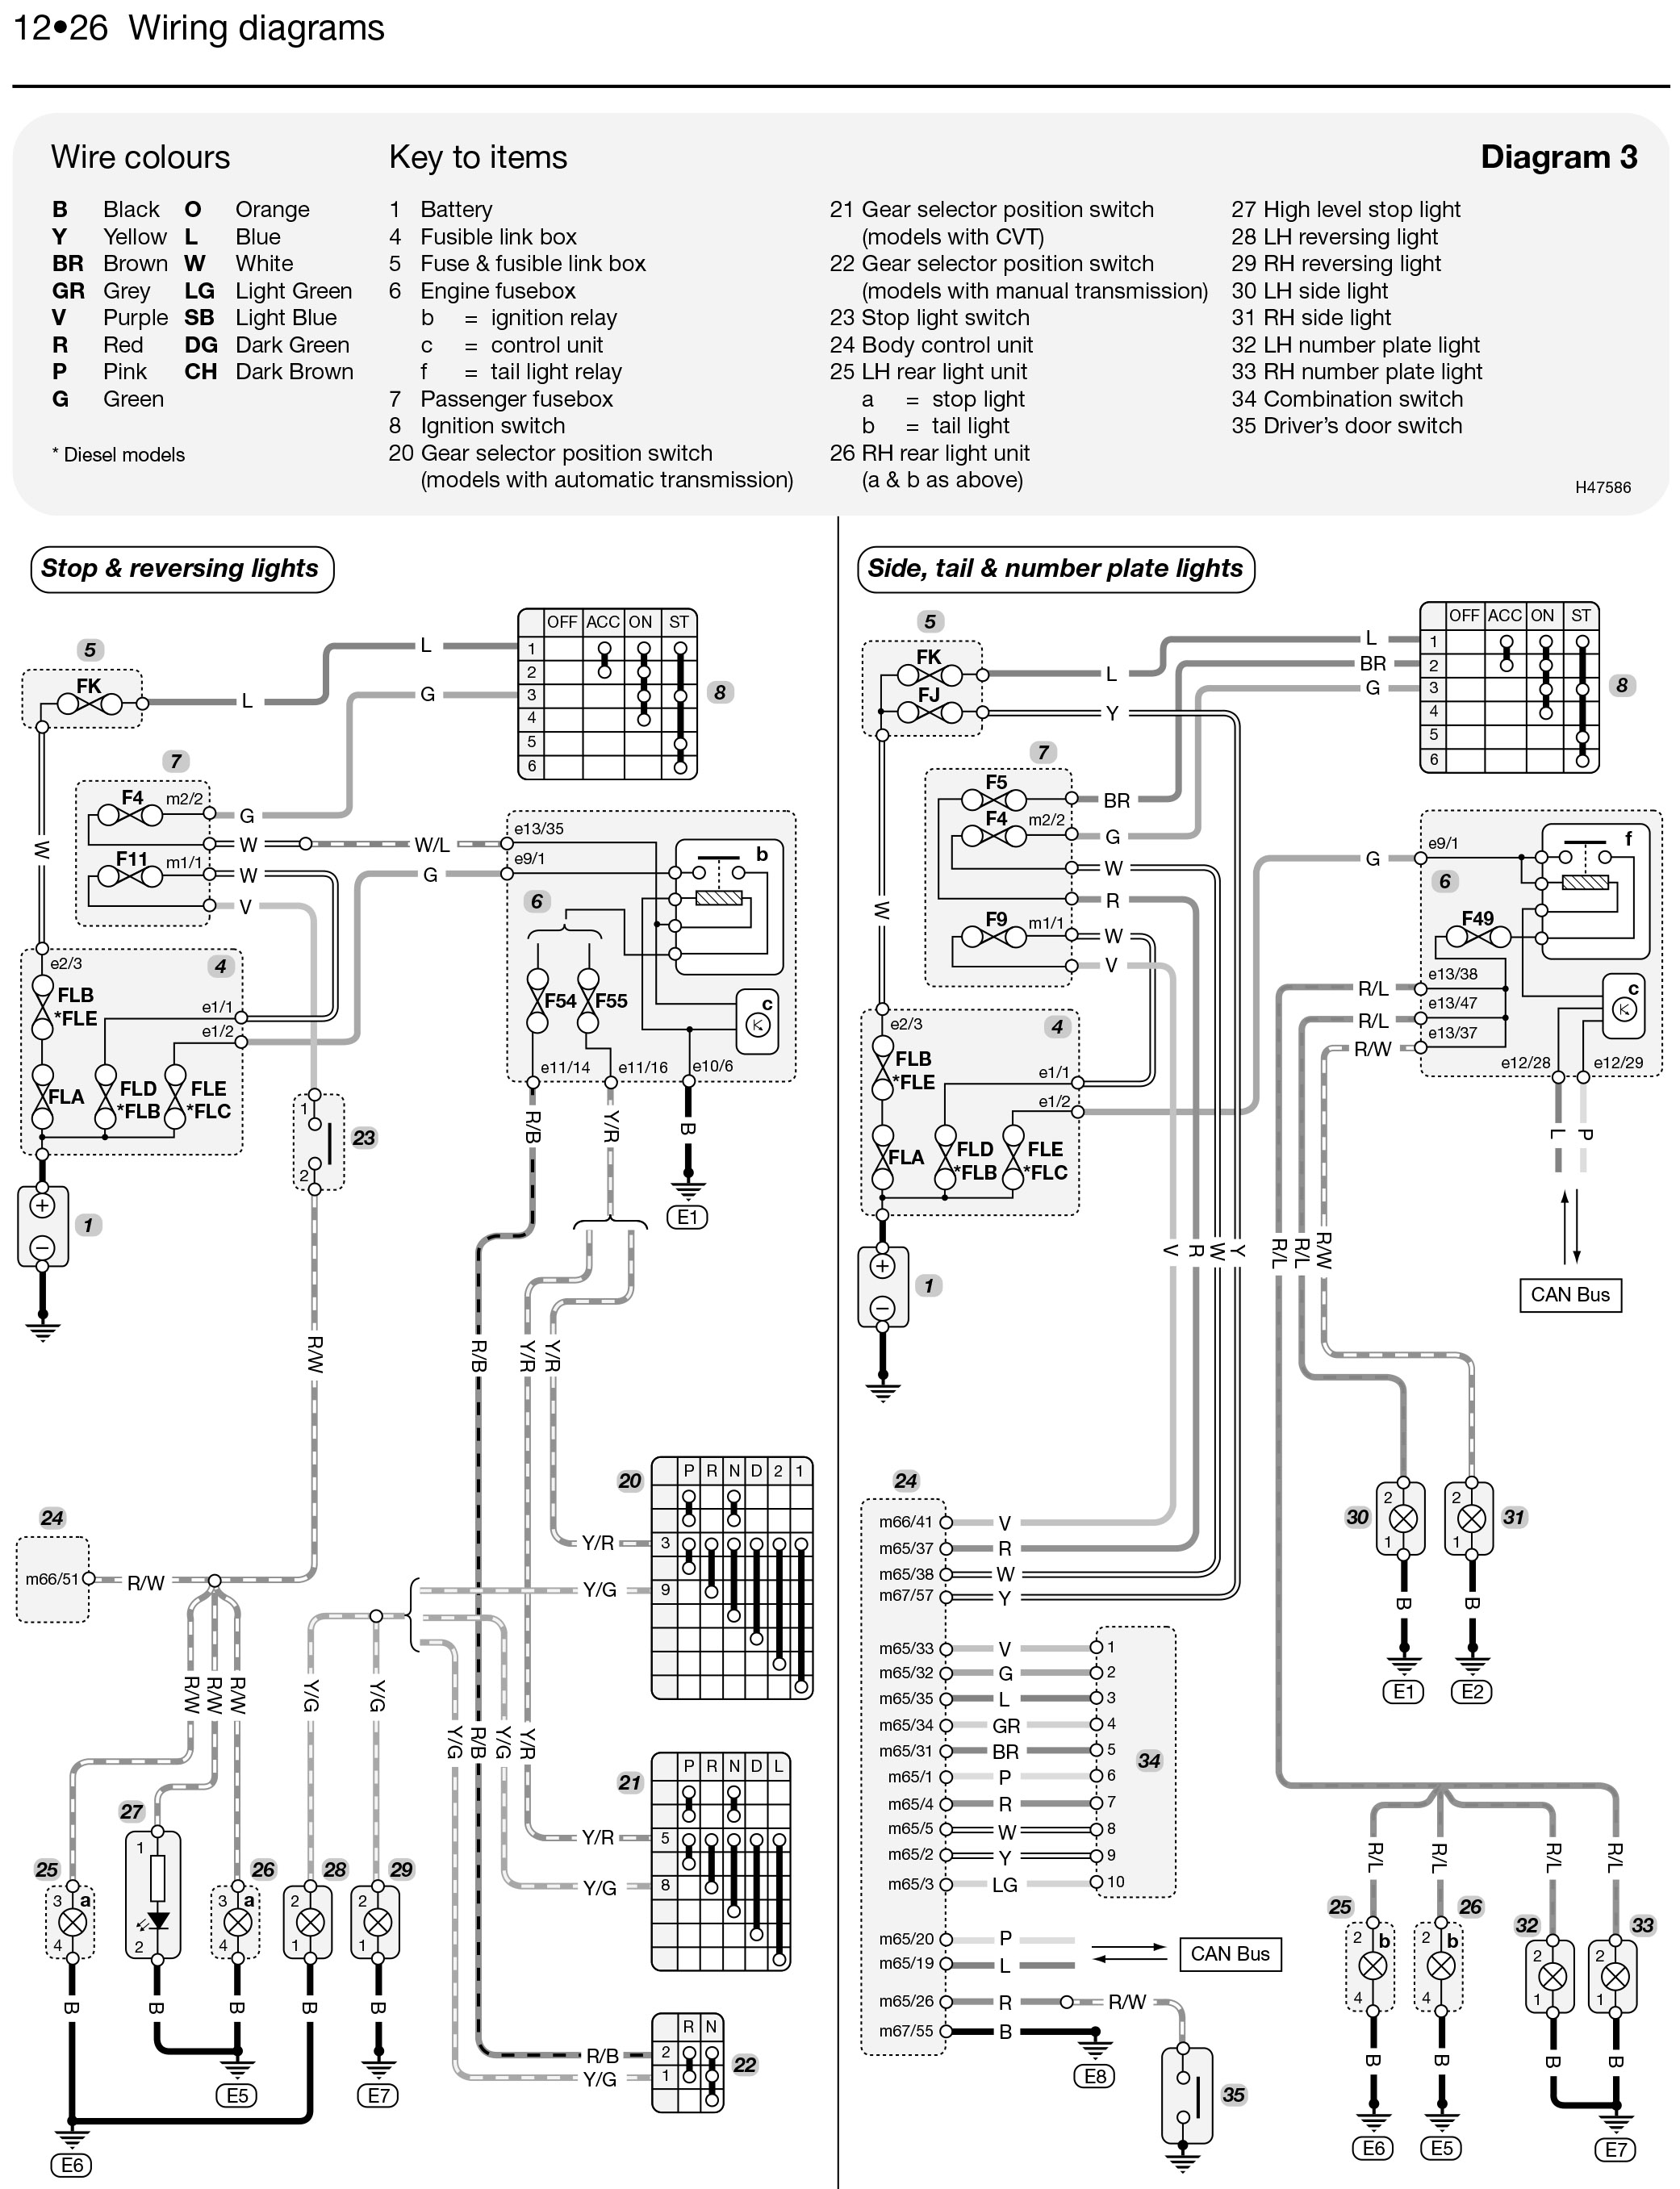 unicell wiring diagram schematic diagramunicell wiring diagram trusted wiring diagram unicell shuttle unicell wiring diagram auto electrical wiring diagram toyota